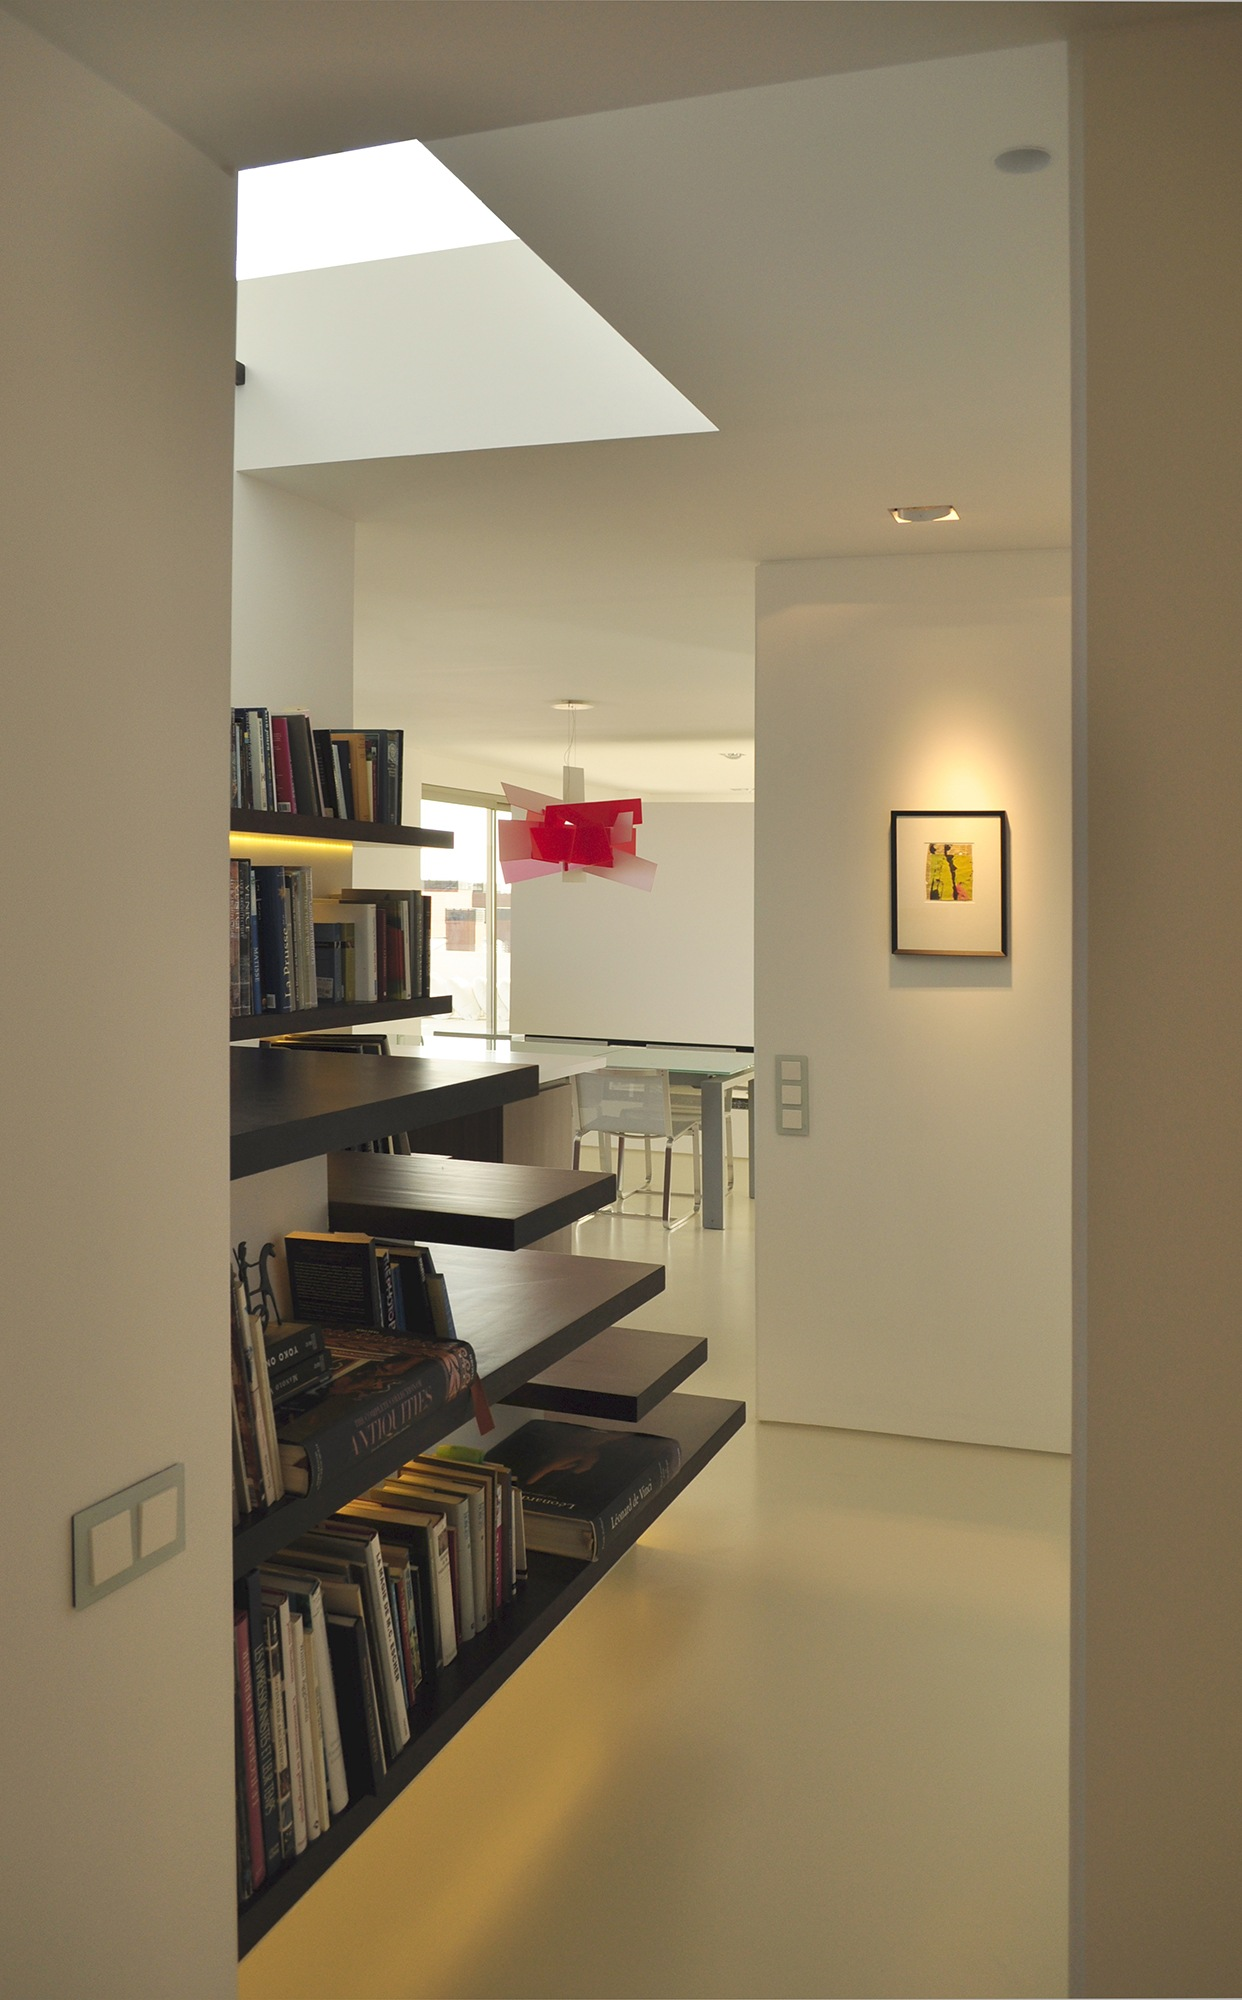 11-architect-barcelona-sitges-home-refurbishment-staircase-book-case